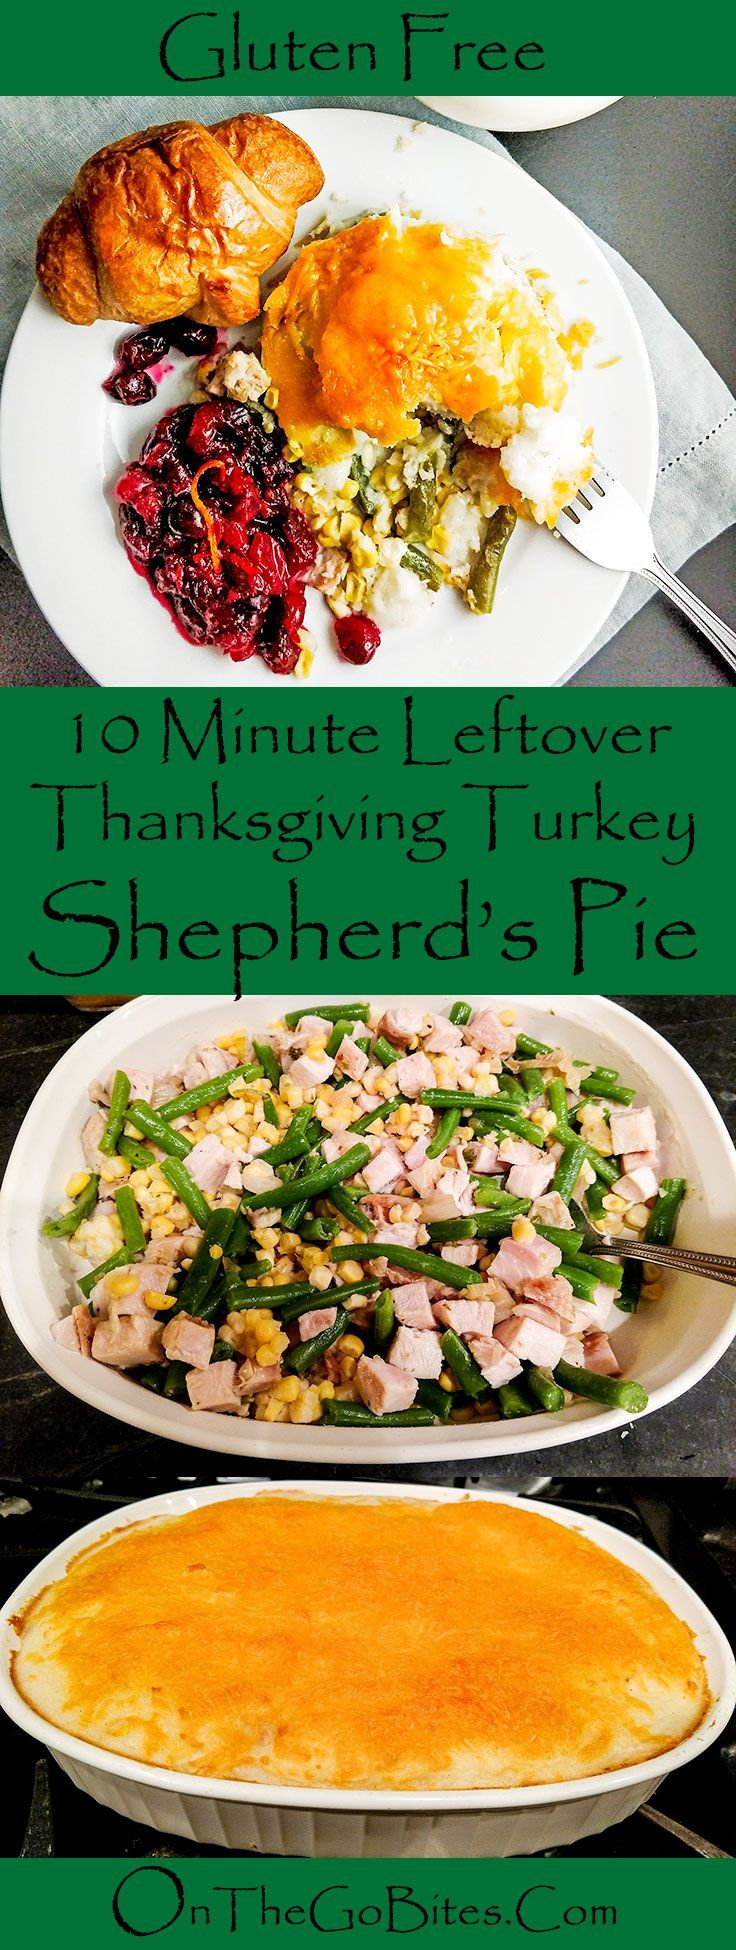 Take some time off and make 10 minute leftover Thanksgiving turkey shepherd's pie.  Gluten free if using the 90 minute Thanksgiving meal. OnTheGoBites.com